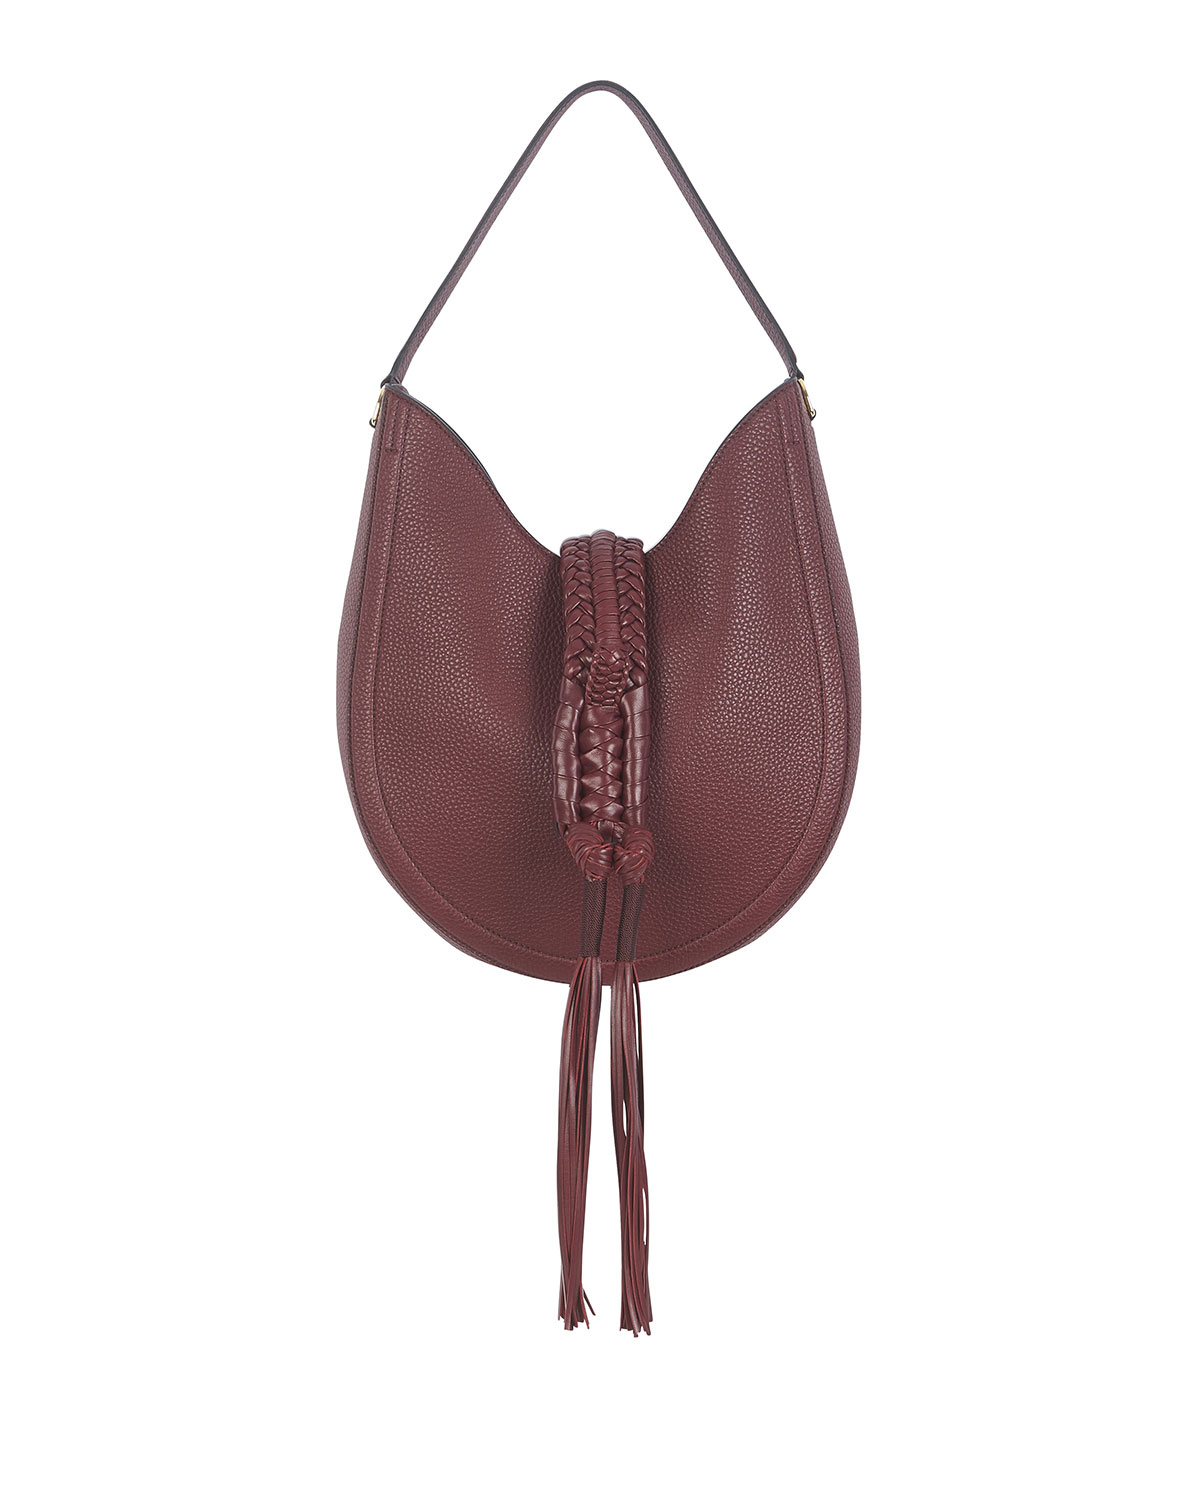 a1e80b5e239 Altuzarra Ghianda Small Leather Hobo Bag | Neiman Marcus